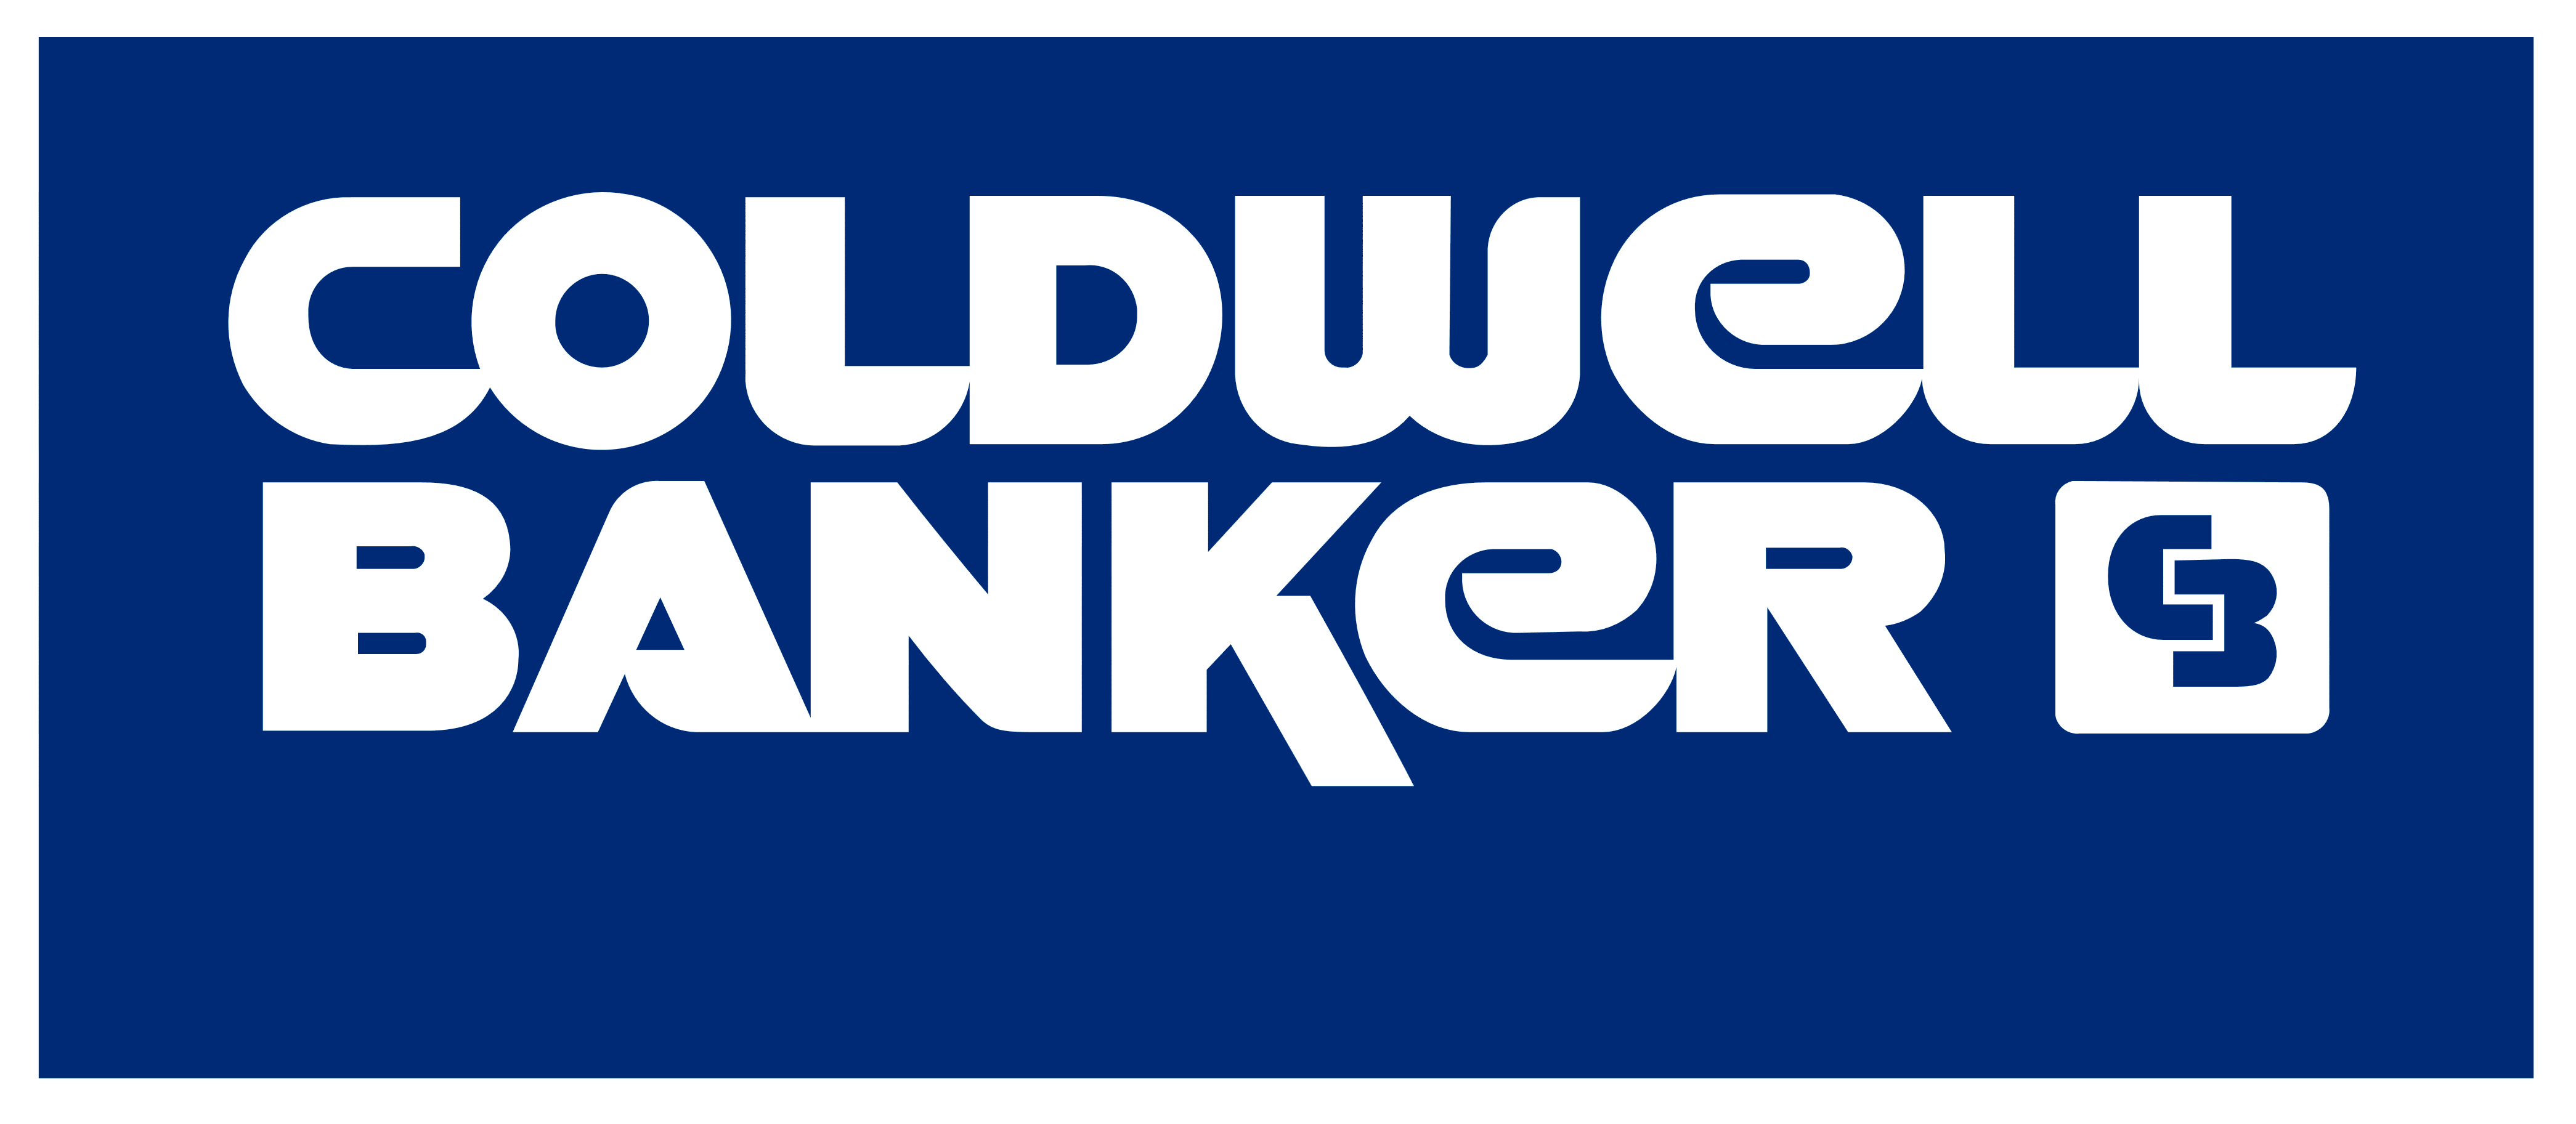 Coldwell Banker.